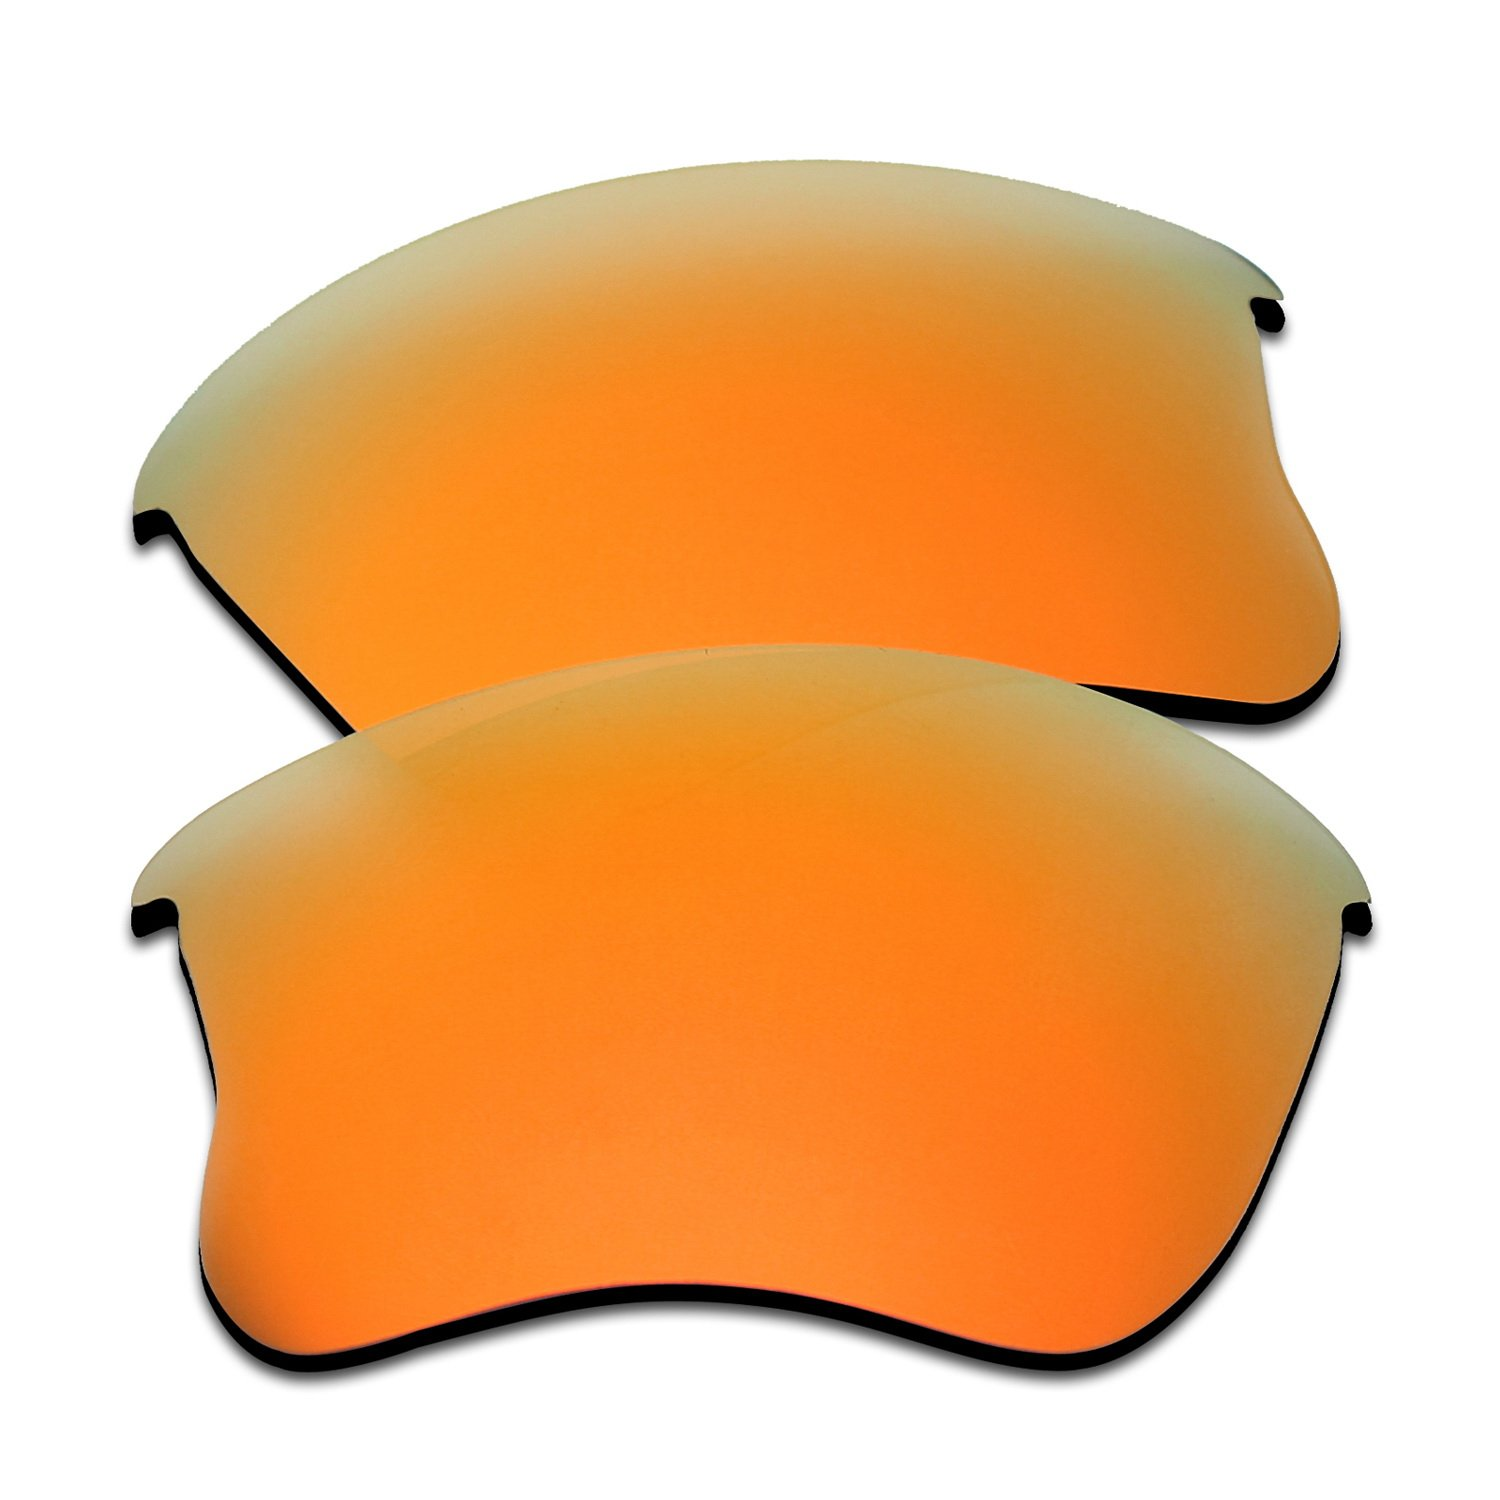 New 1.8mm Thick UV400 Replacement Lenses for Oakley Flak Jacket XLJ - Options by Highprecisionoptics